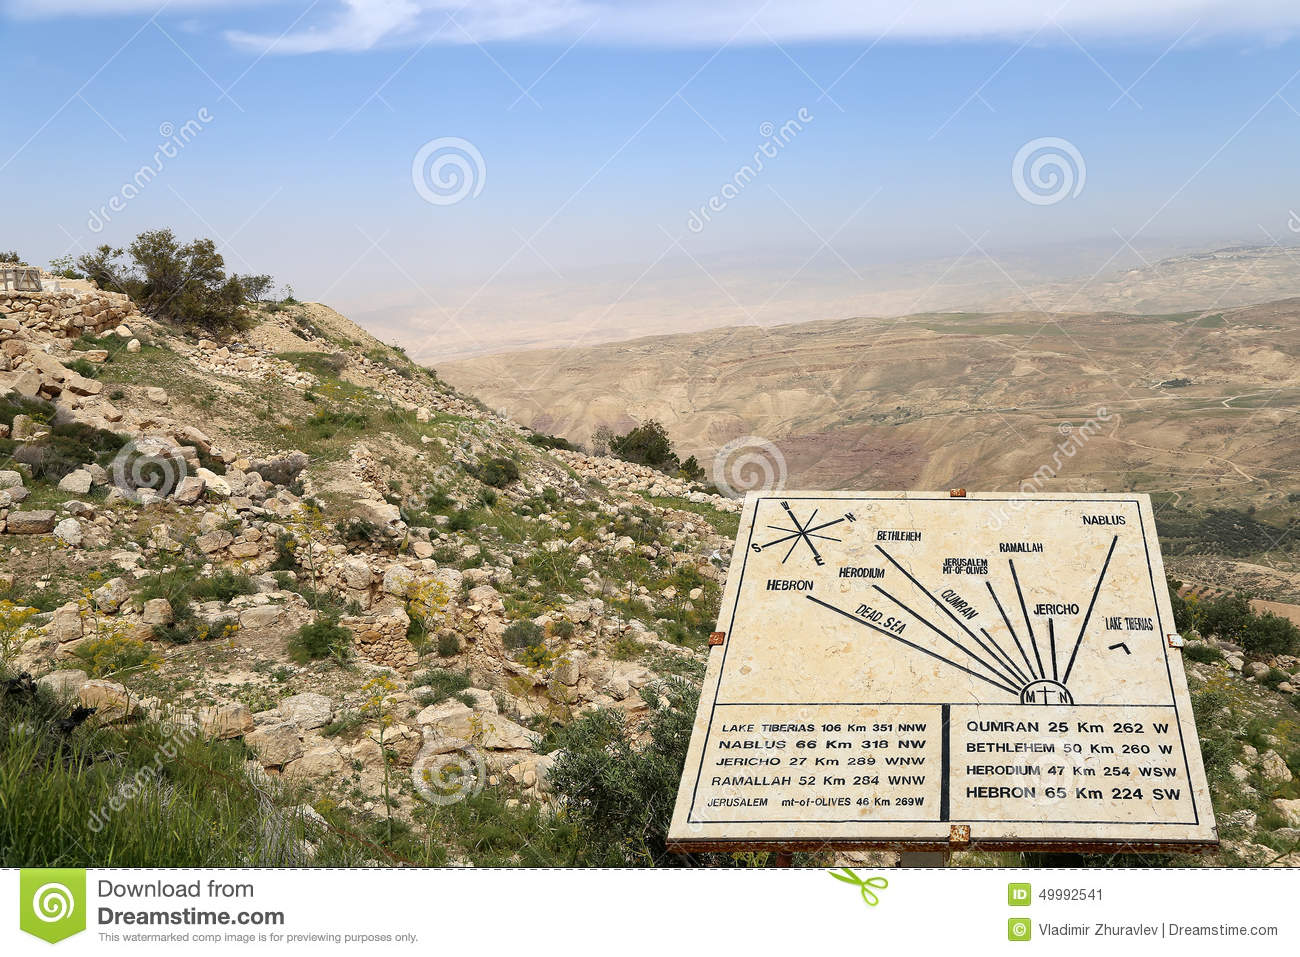 Plaque Showing The Distance From Mount Nebo To Various Locations.